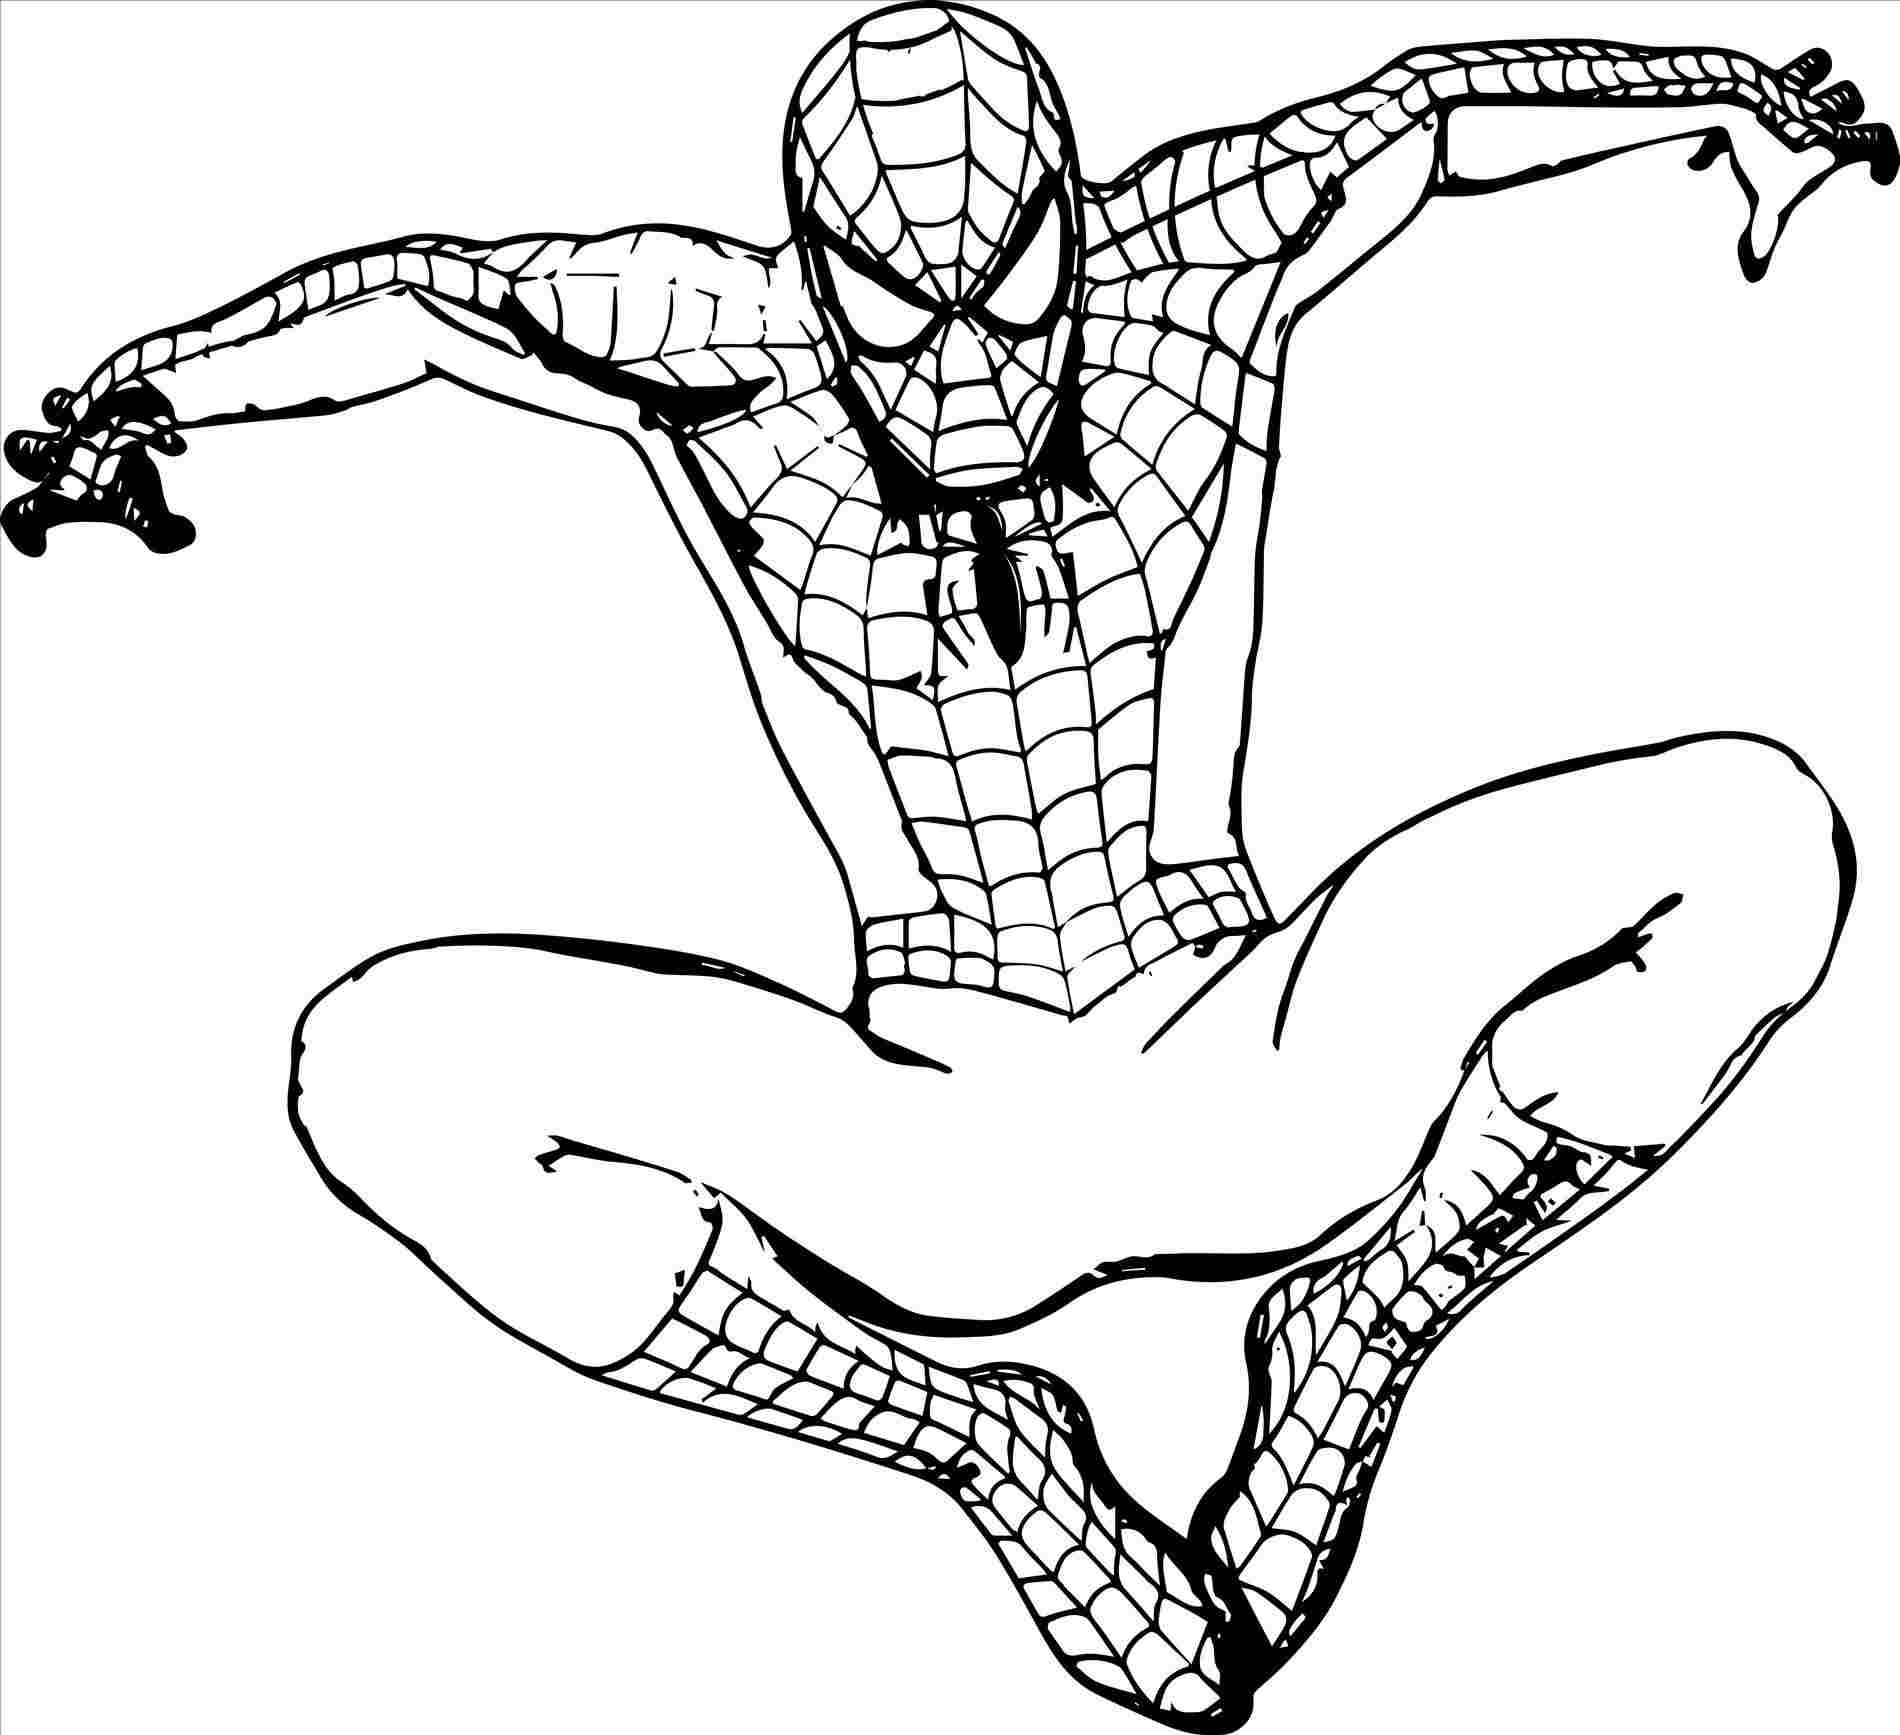 spiderman outline drawing spiderman outline drawing at getdrawings free download drawing spiderman outline